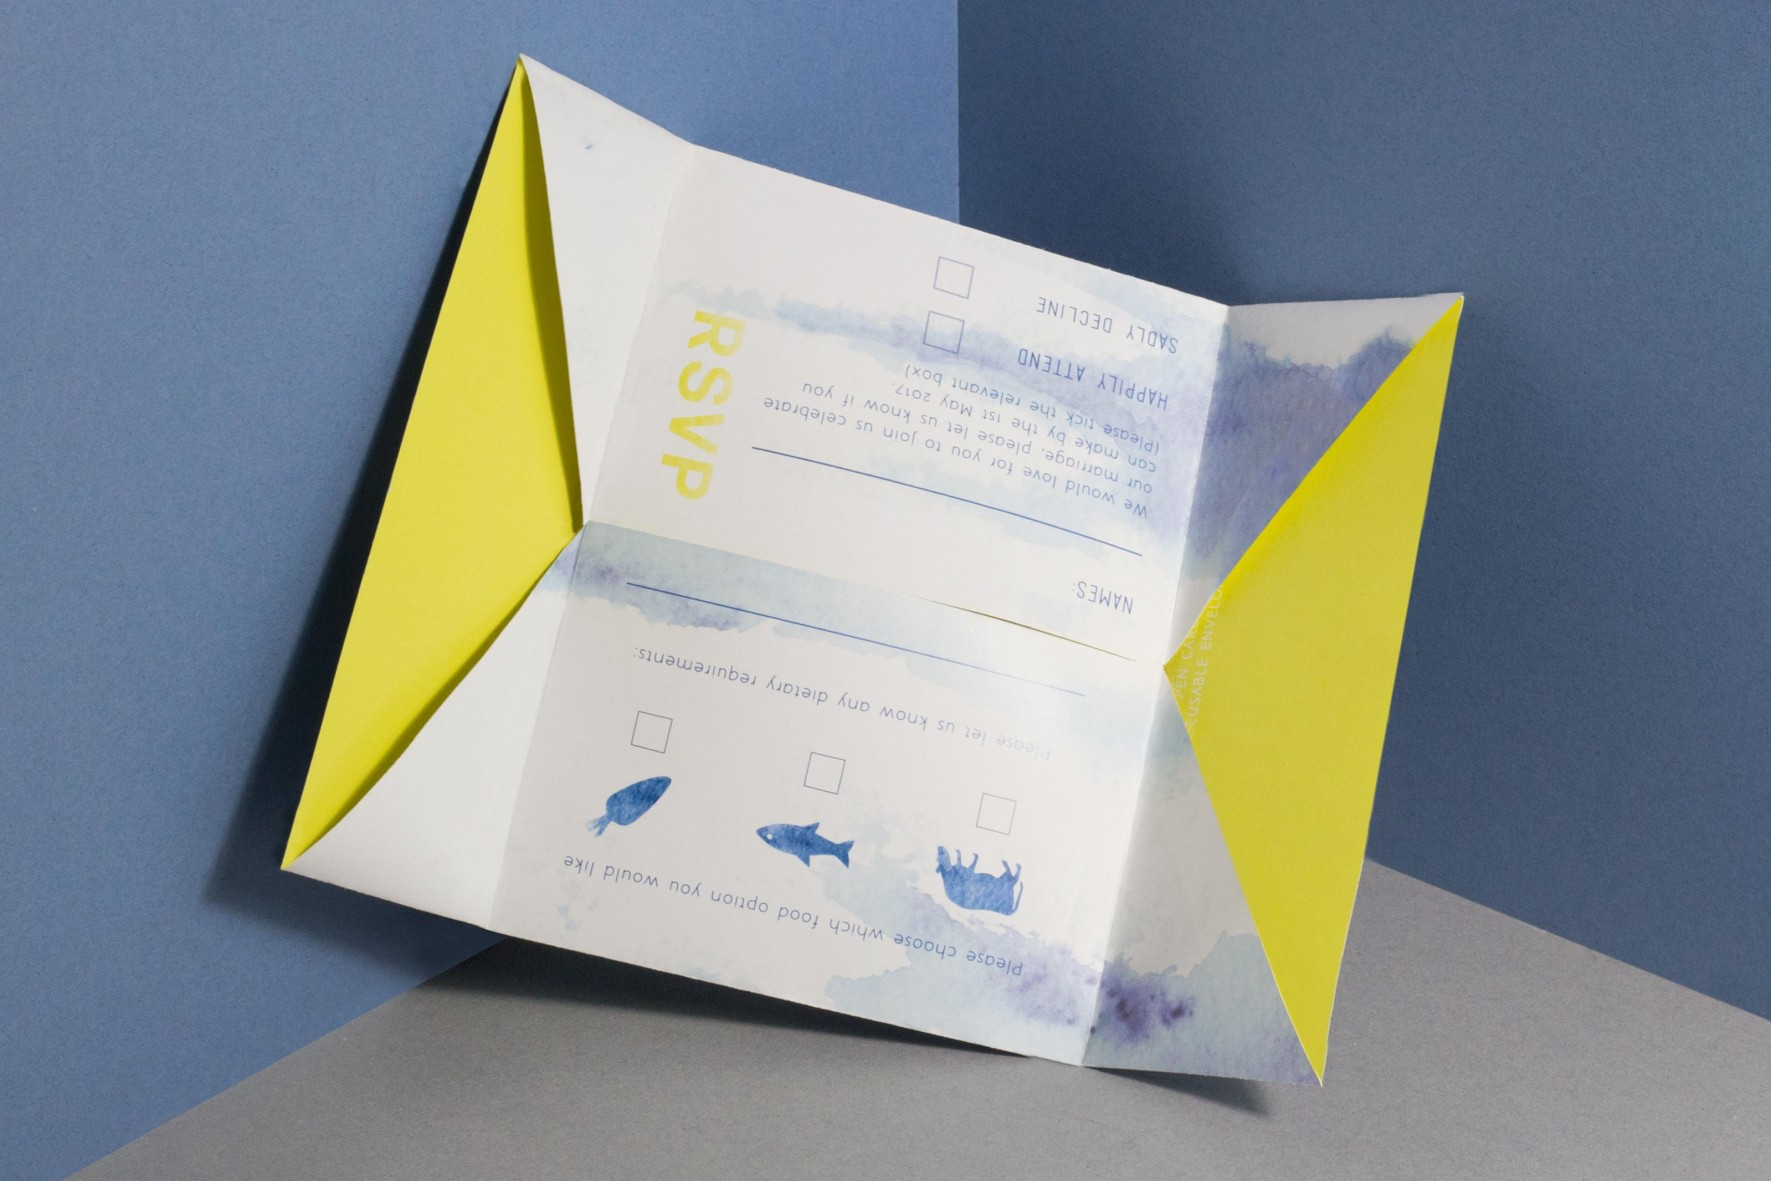 Tie dye dip dye blue and yellow eco friendly modern wedding invitation with folded, reversible envelope . Wedding stationery design by www.rosepaperscissors.com